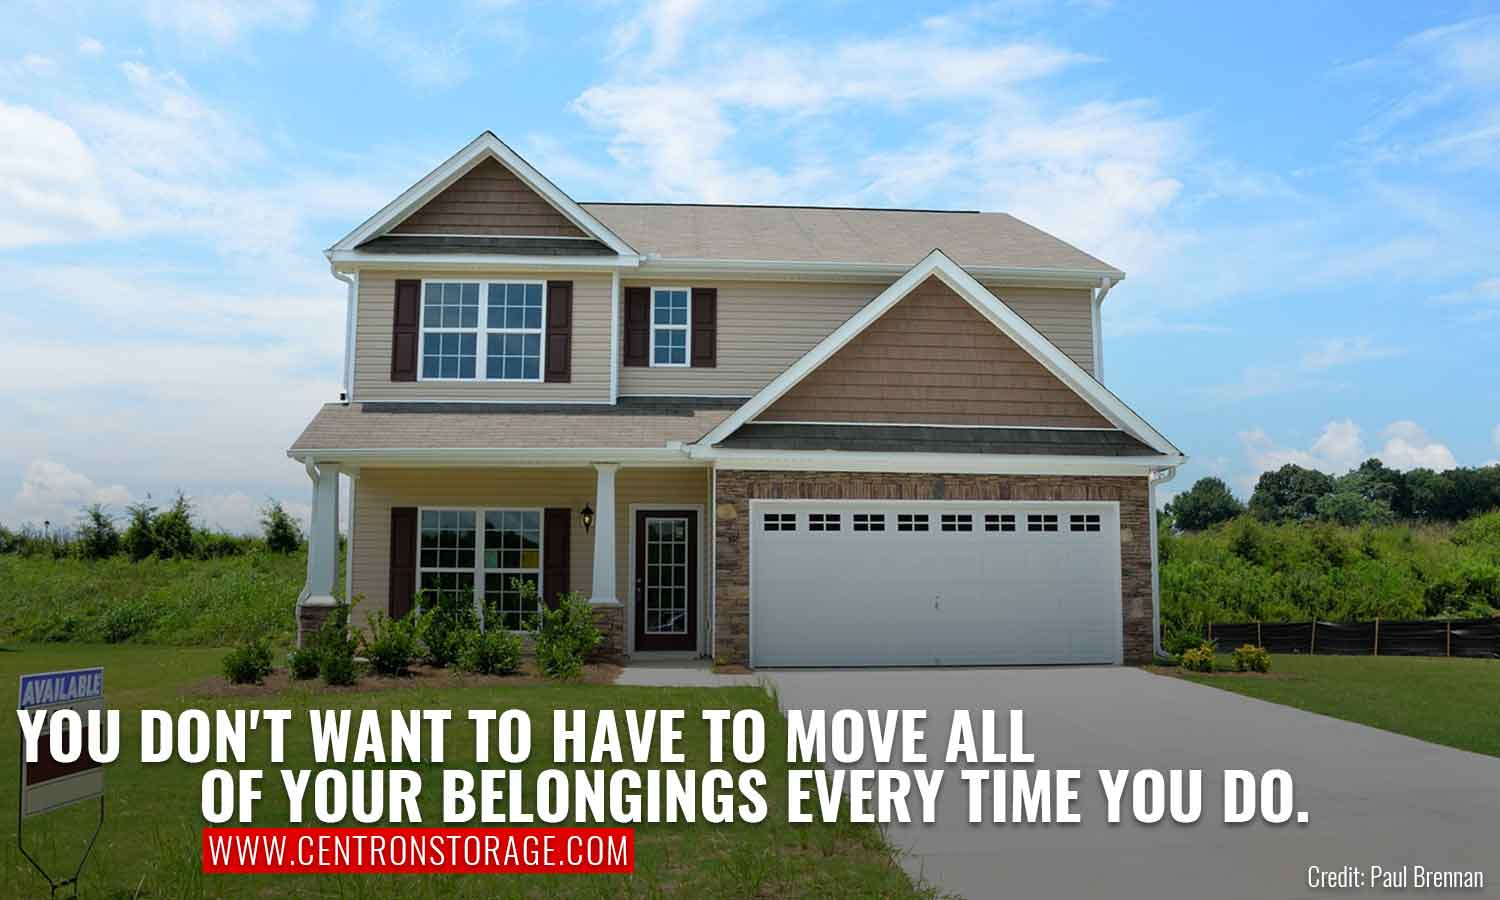 You don't want to have to move all of your belongings every time you do.